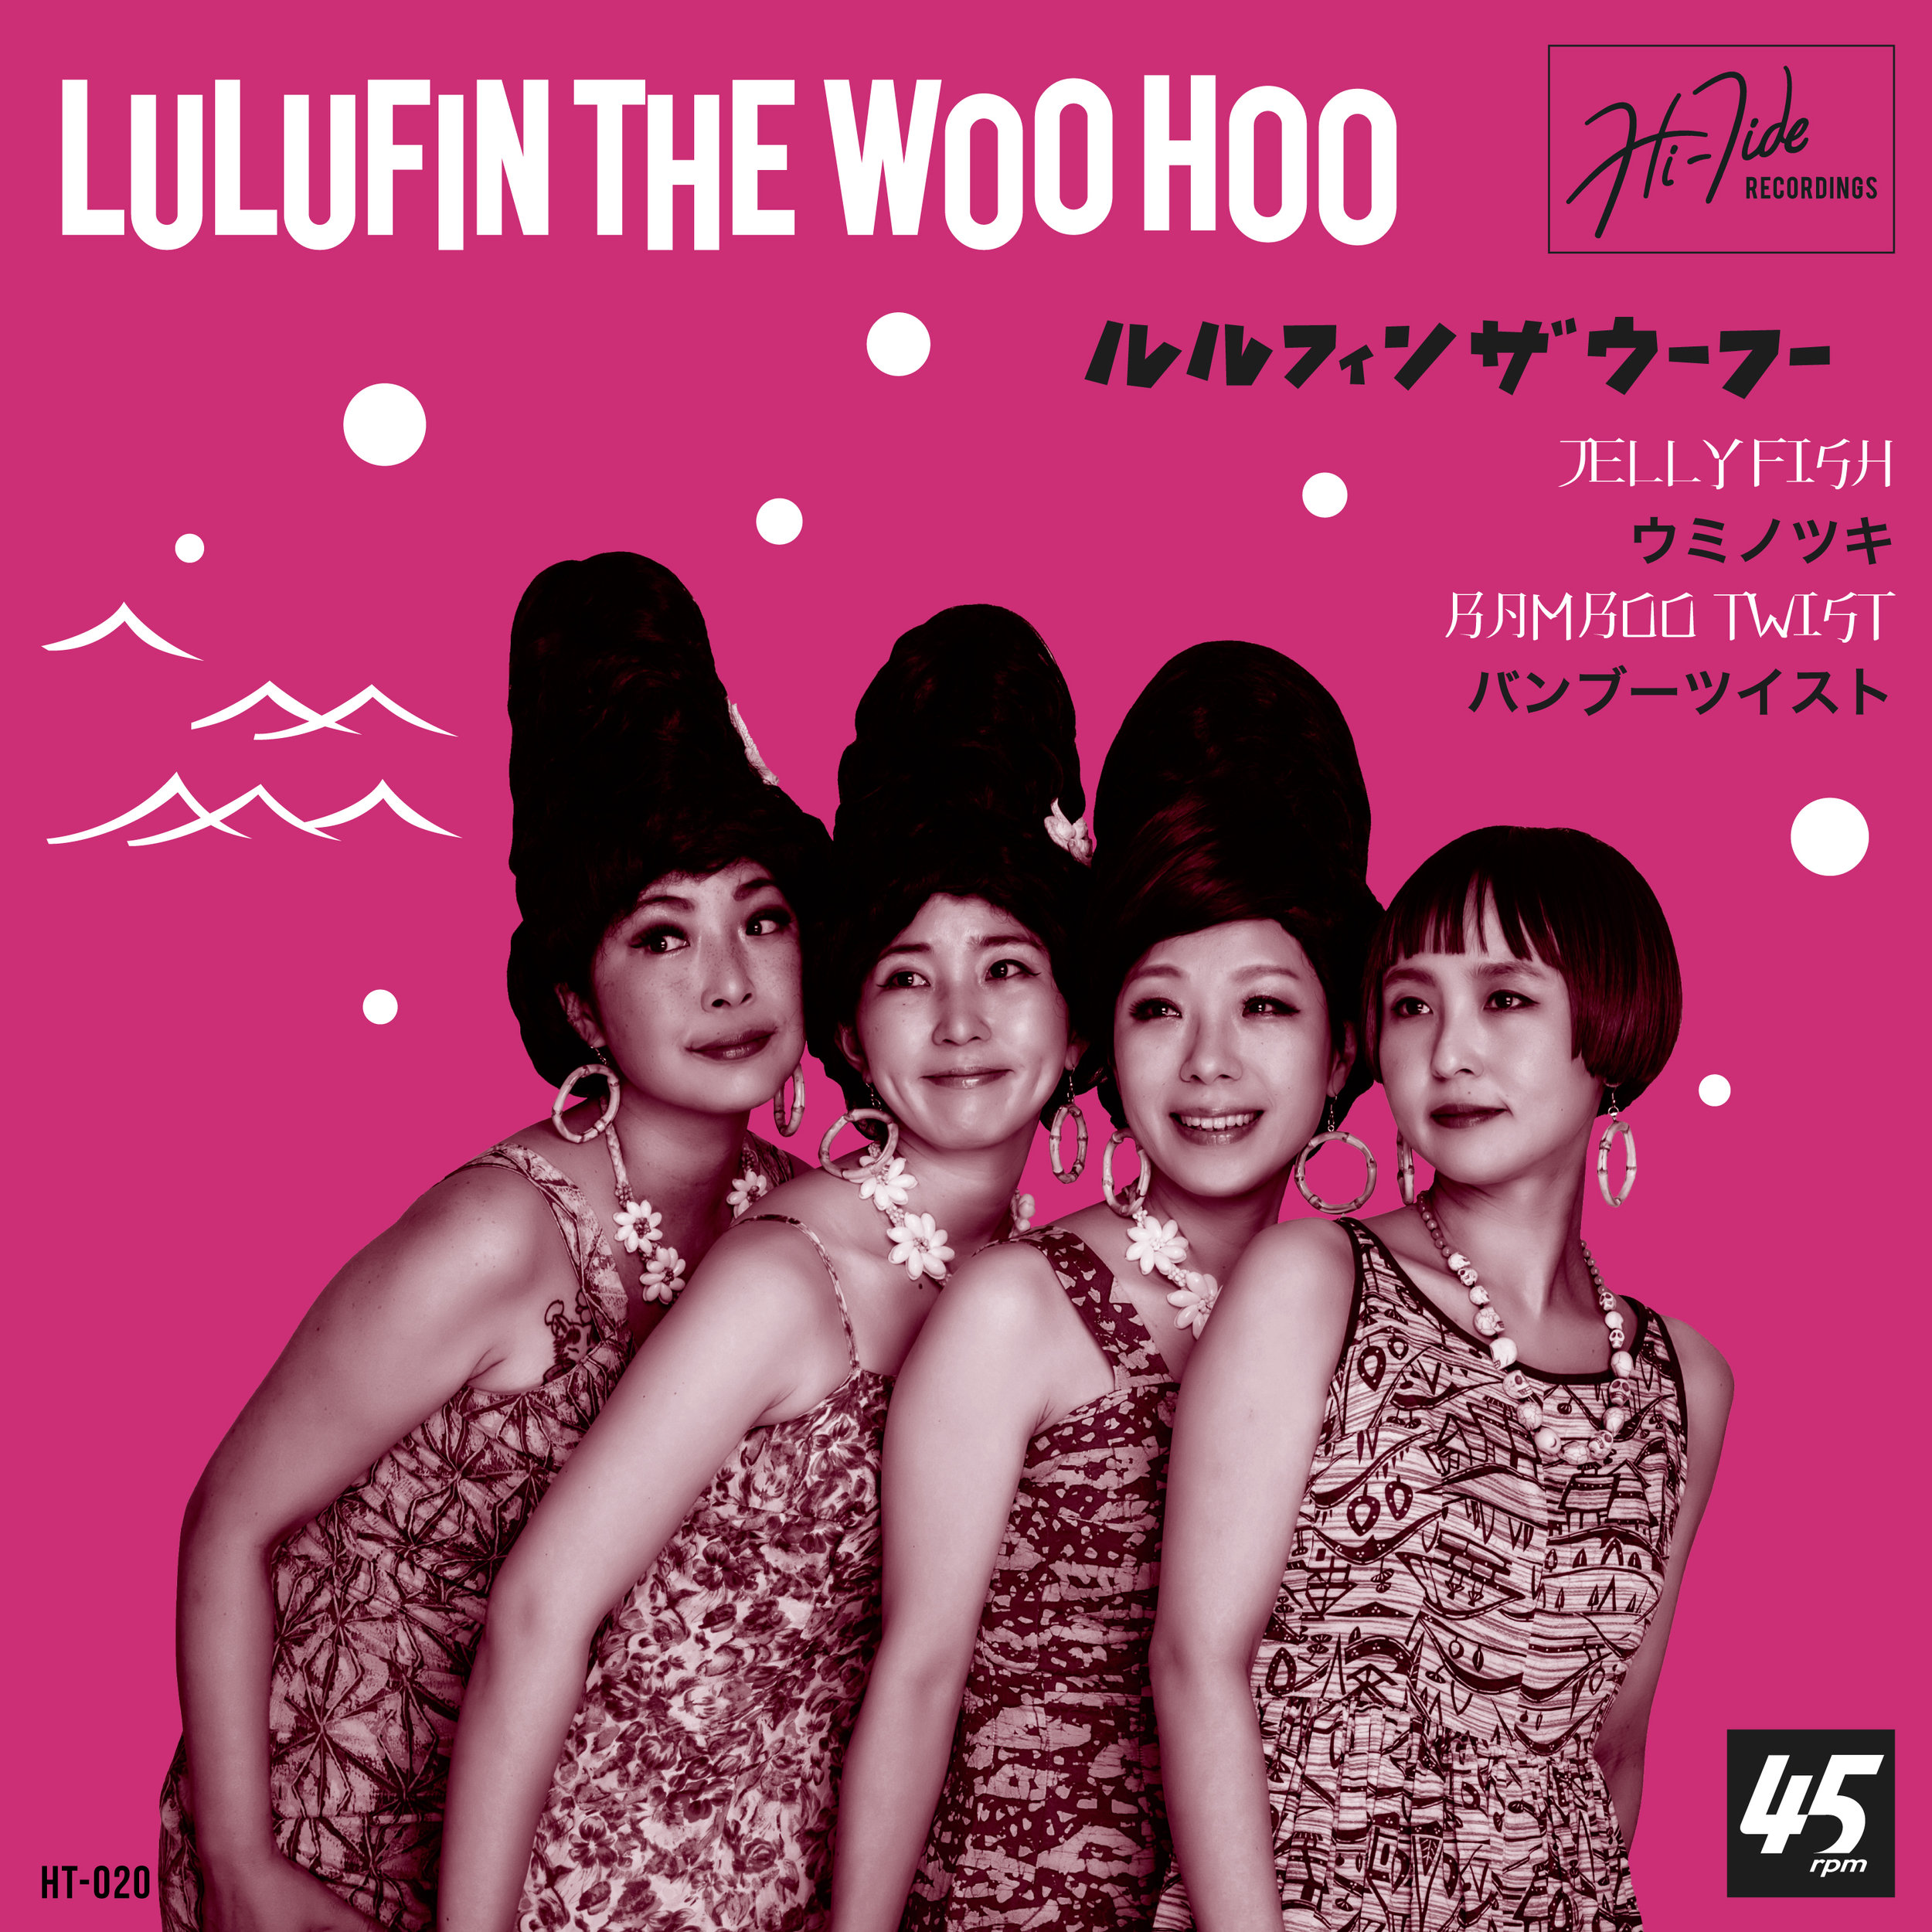 "LULUFIN THE WOO HOO  ""Jellyfish / Bamboo Twist"" - Single (HT-020) Format: Digital, 7"" Vinyl (August 2019)"